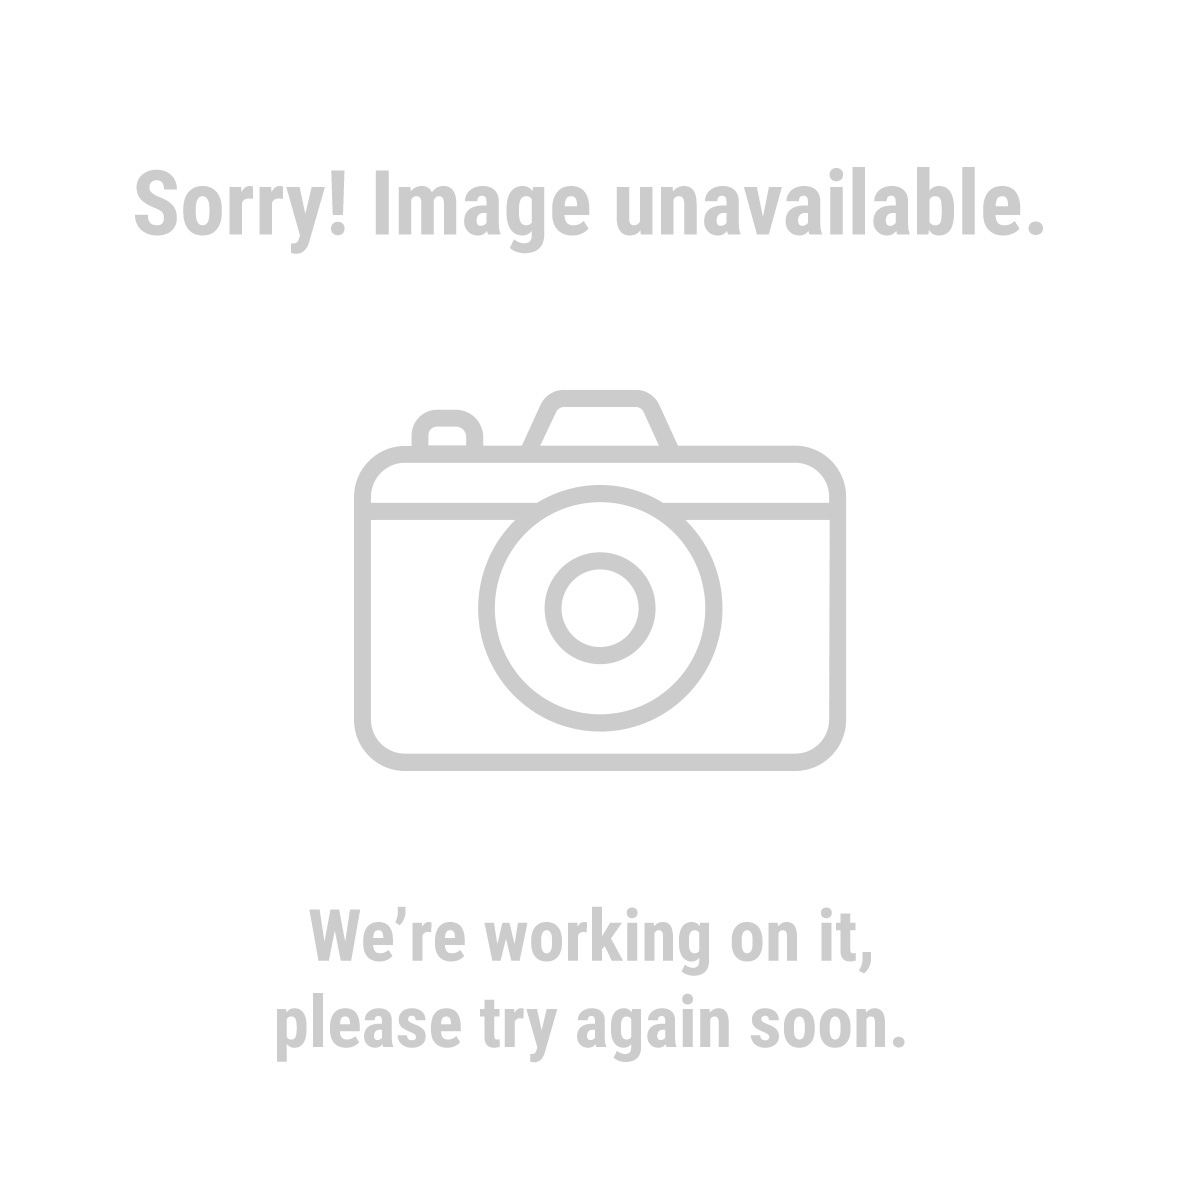 Western Safety 62260 Yellow Rain Suit, XX-Large 2 Pc